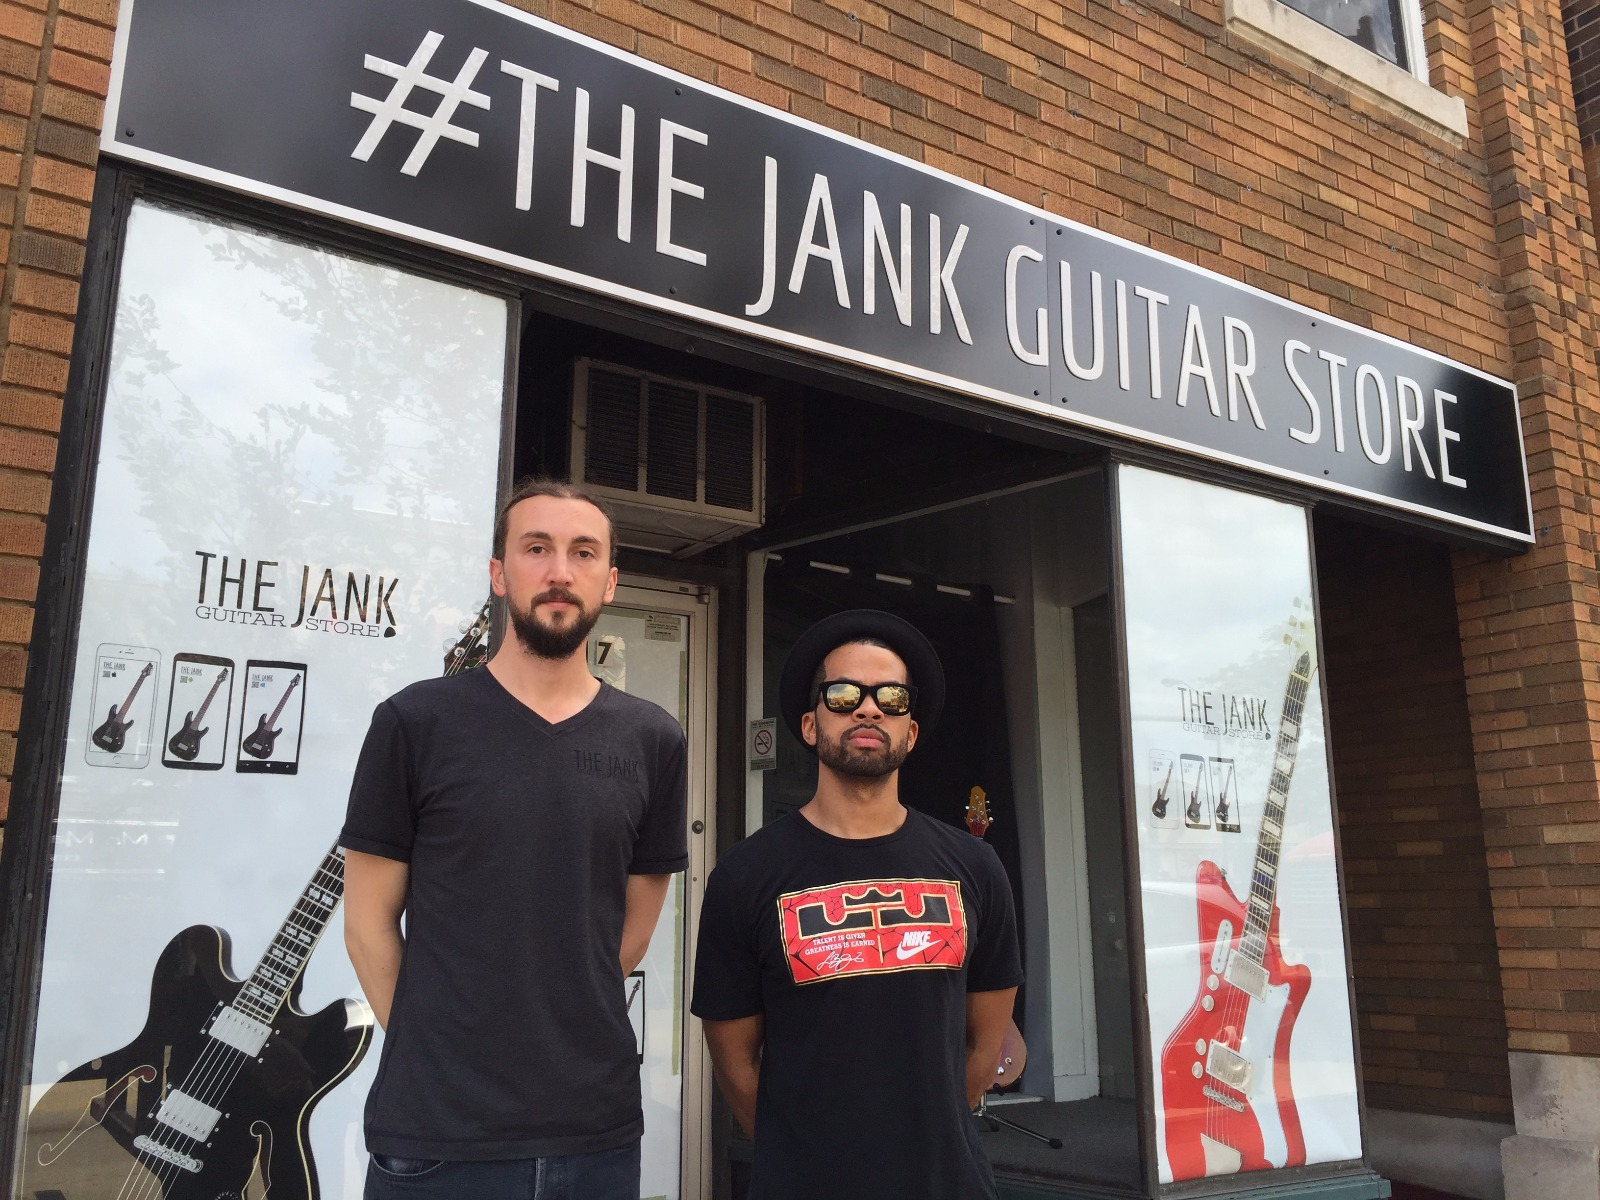 The Jank Guitar Store 3.jpg